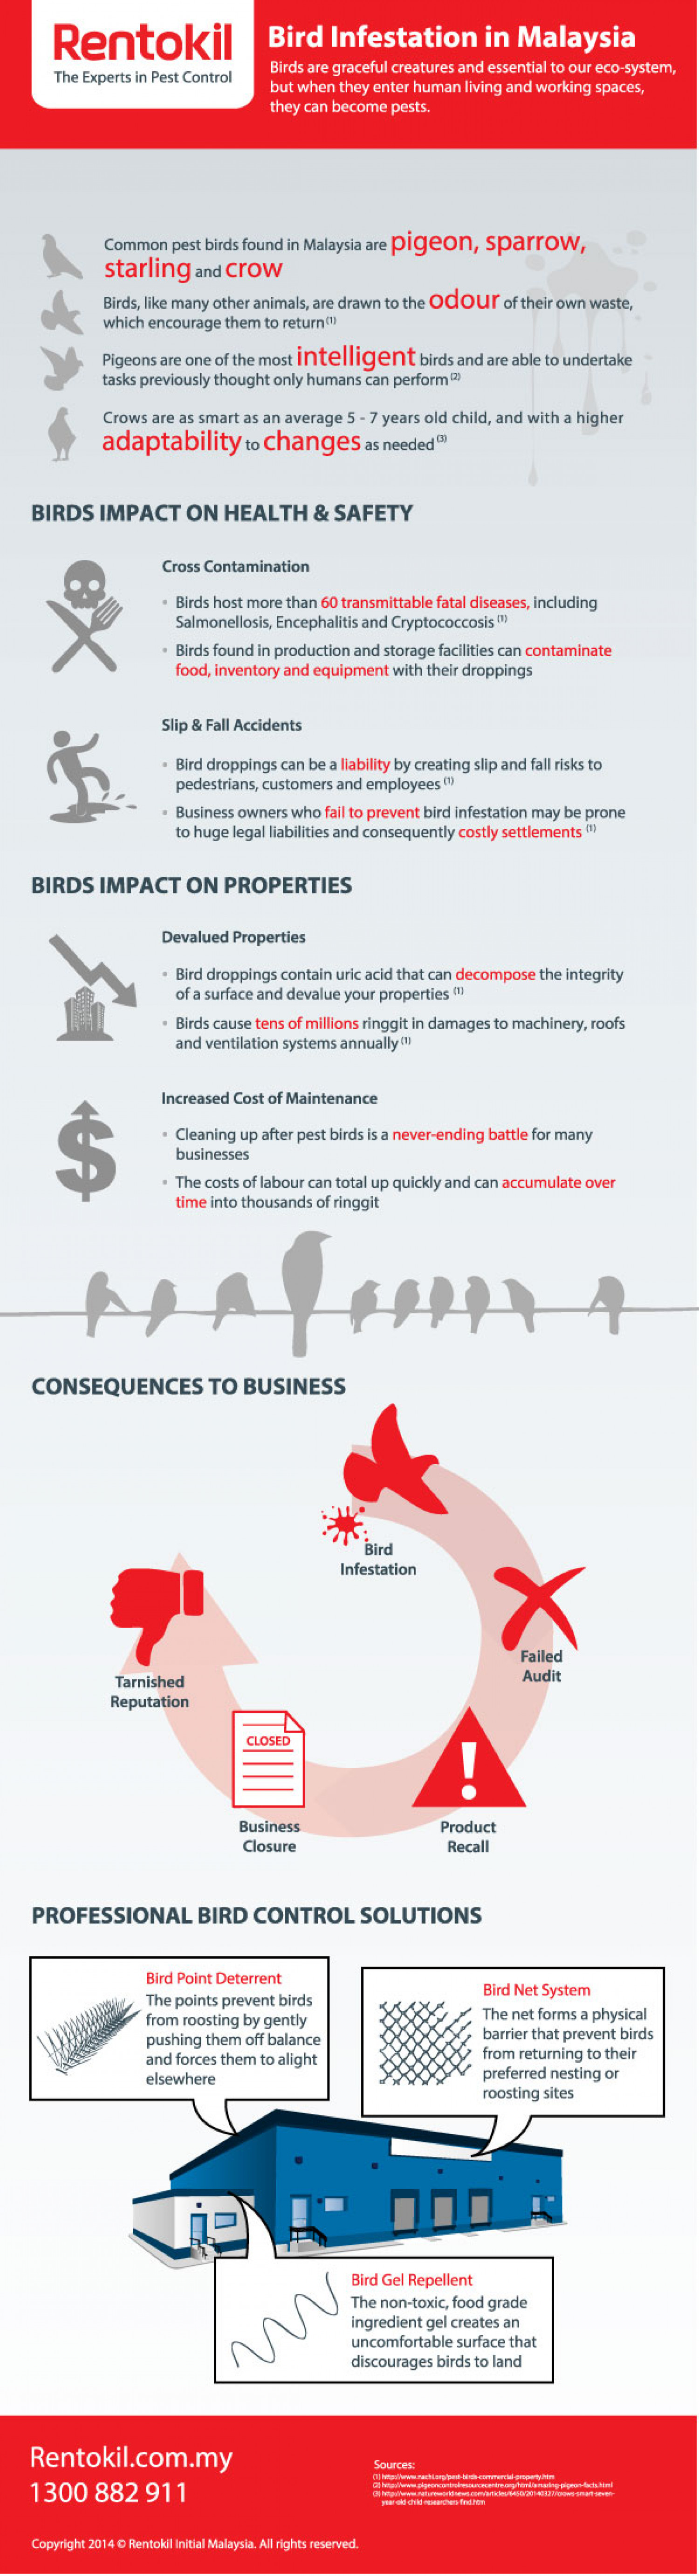 Bird Infestation in Malaysia Infographic